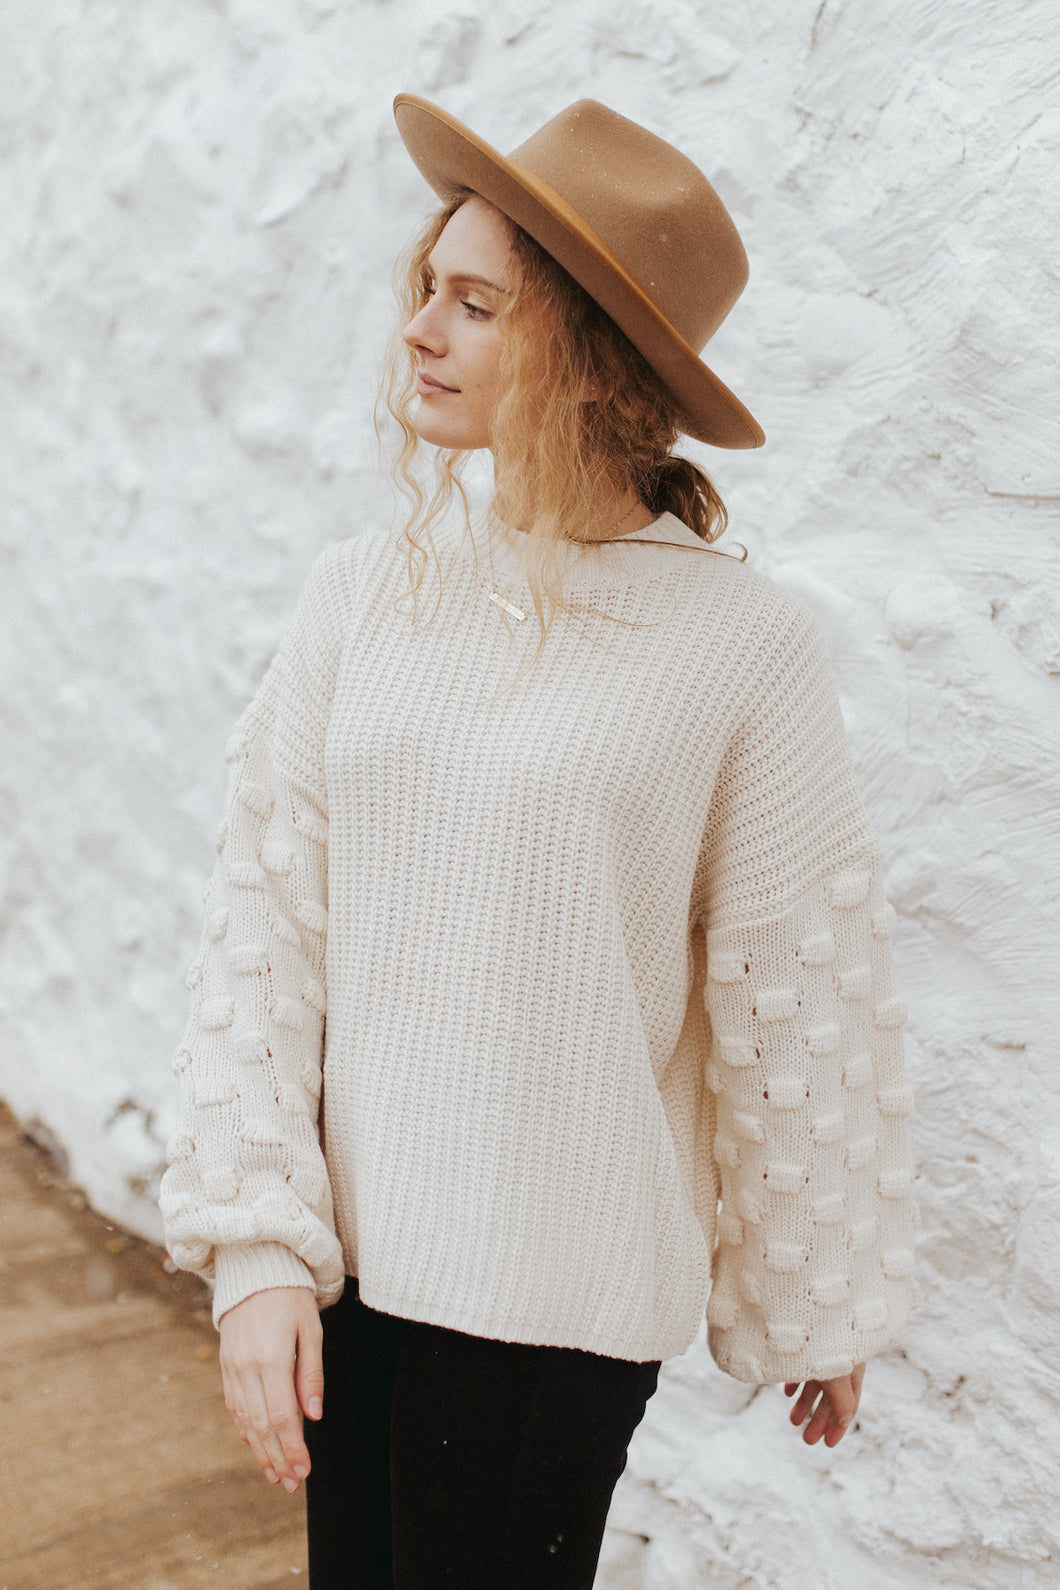 The Monica Knit Sweater